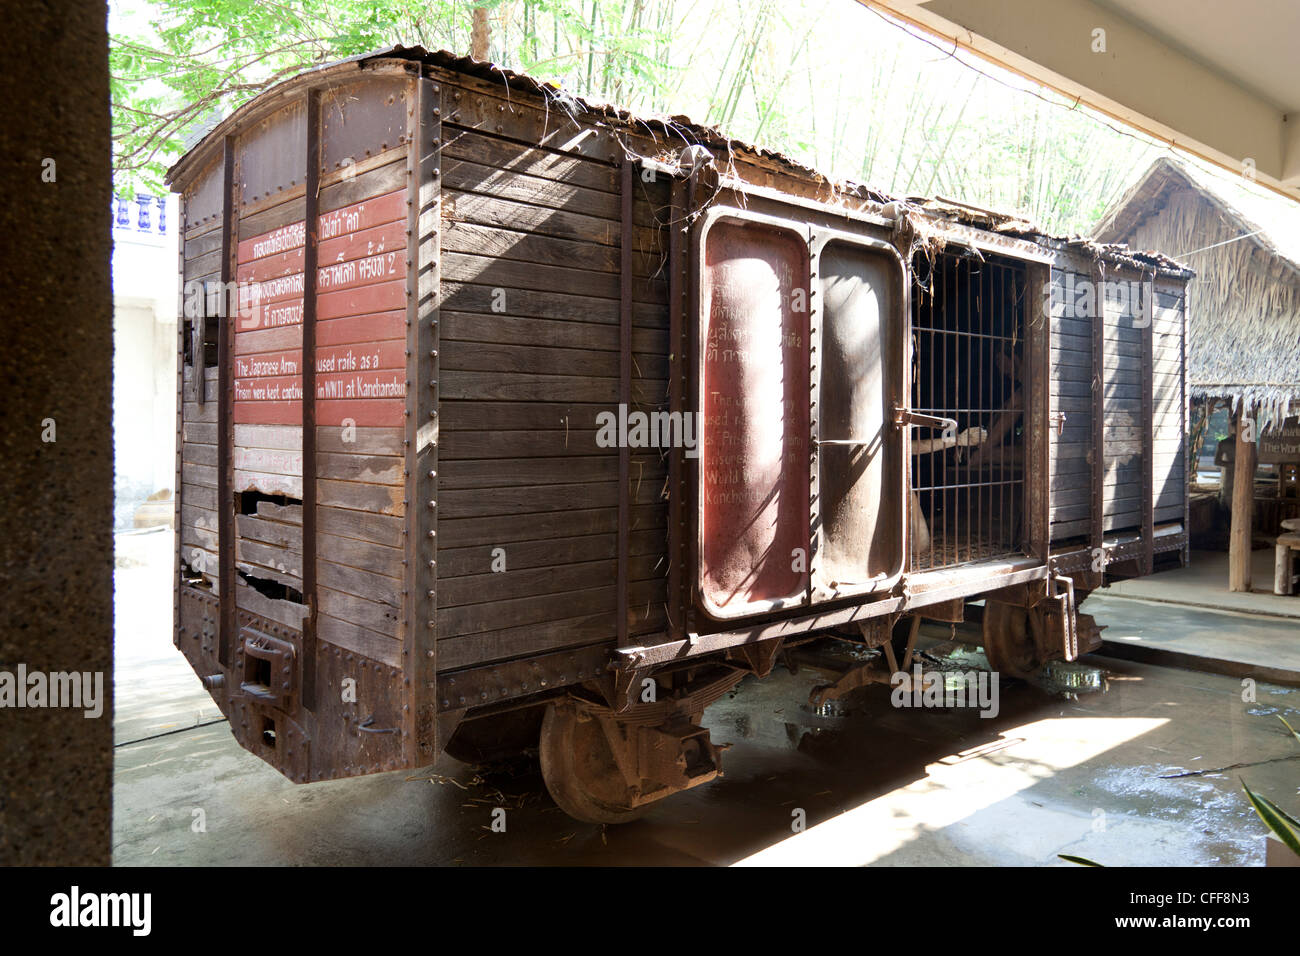 A wagon on display in which war prisoners (POW's) were jailed by the Japanese army (Kanchanaburi - Thailand). - Stock Image